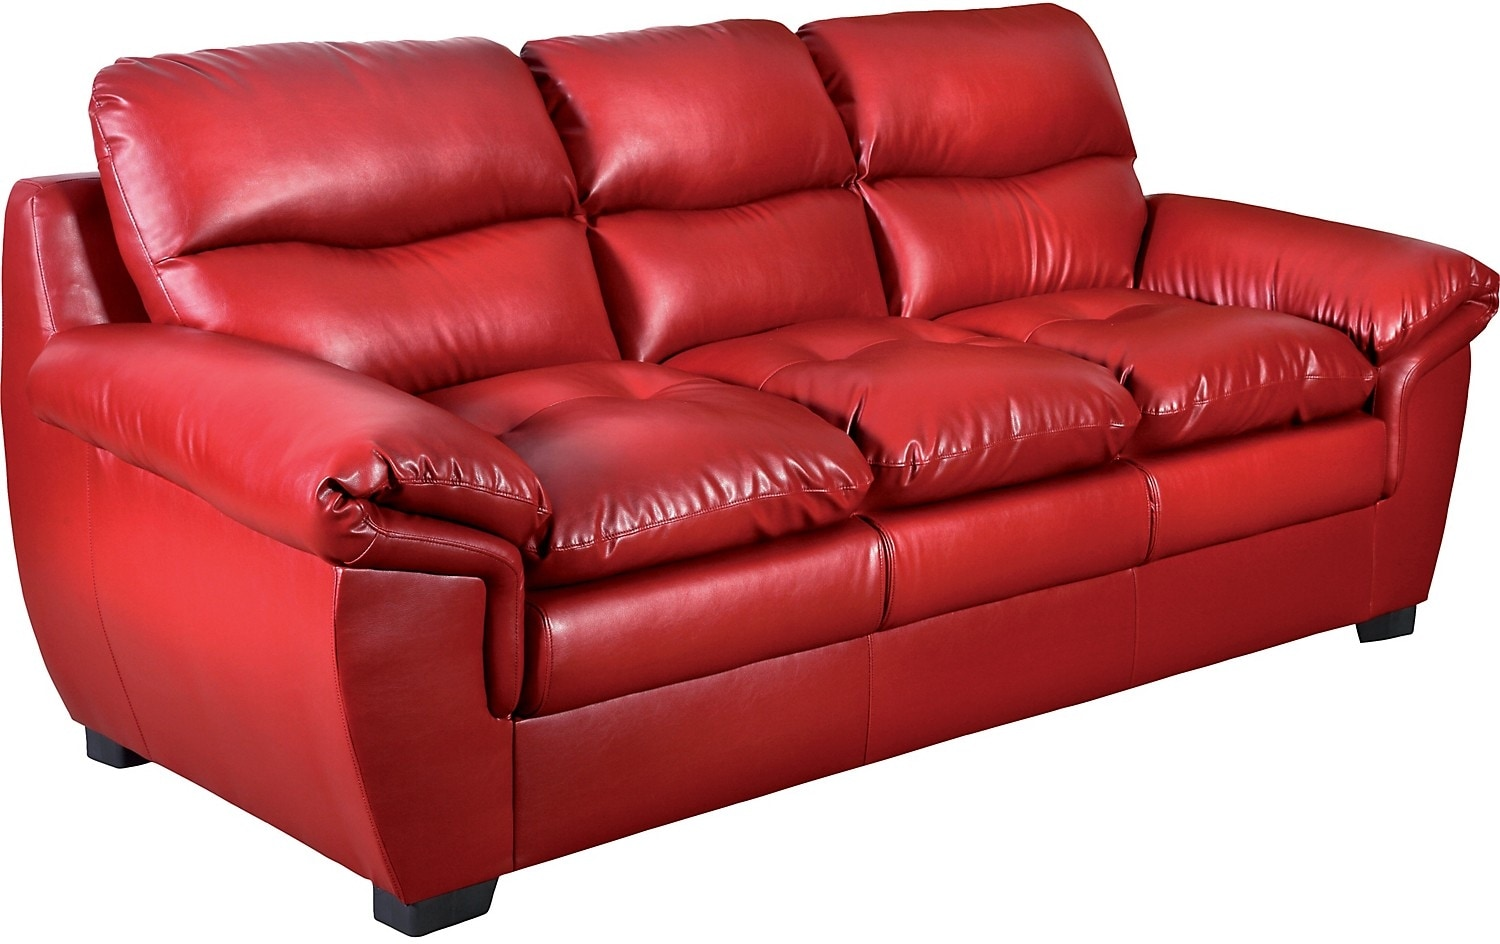 Living Room Furniture - E6 Red Bonded Leather Sofa